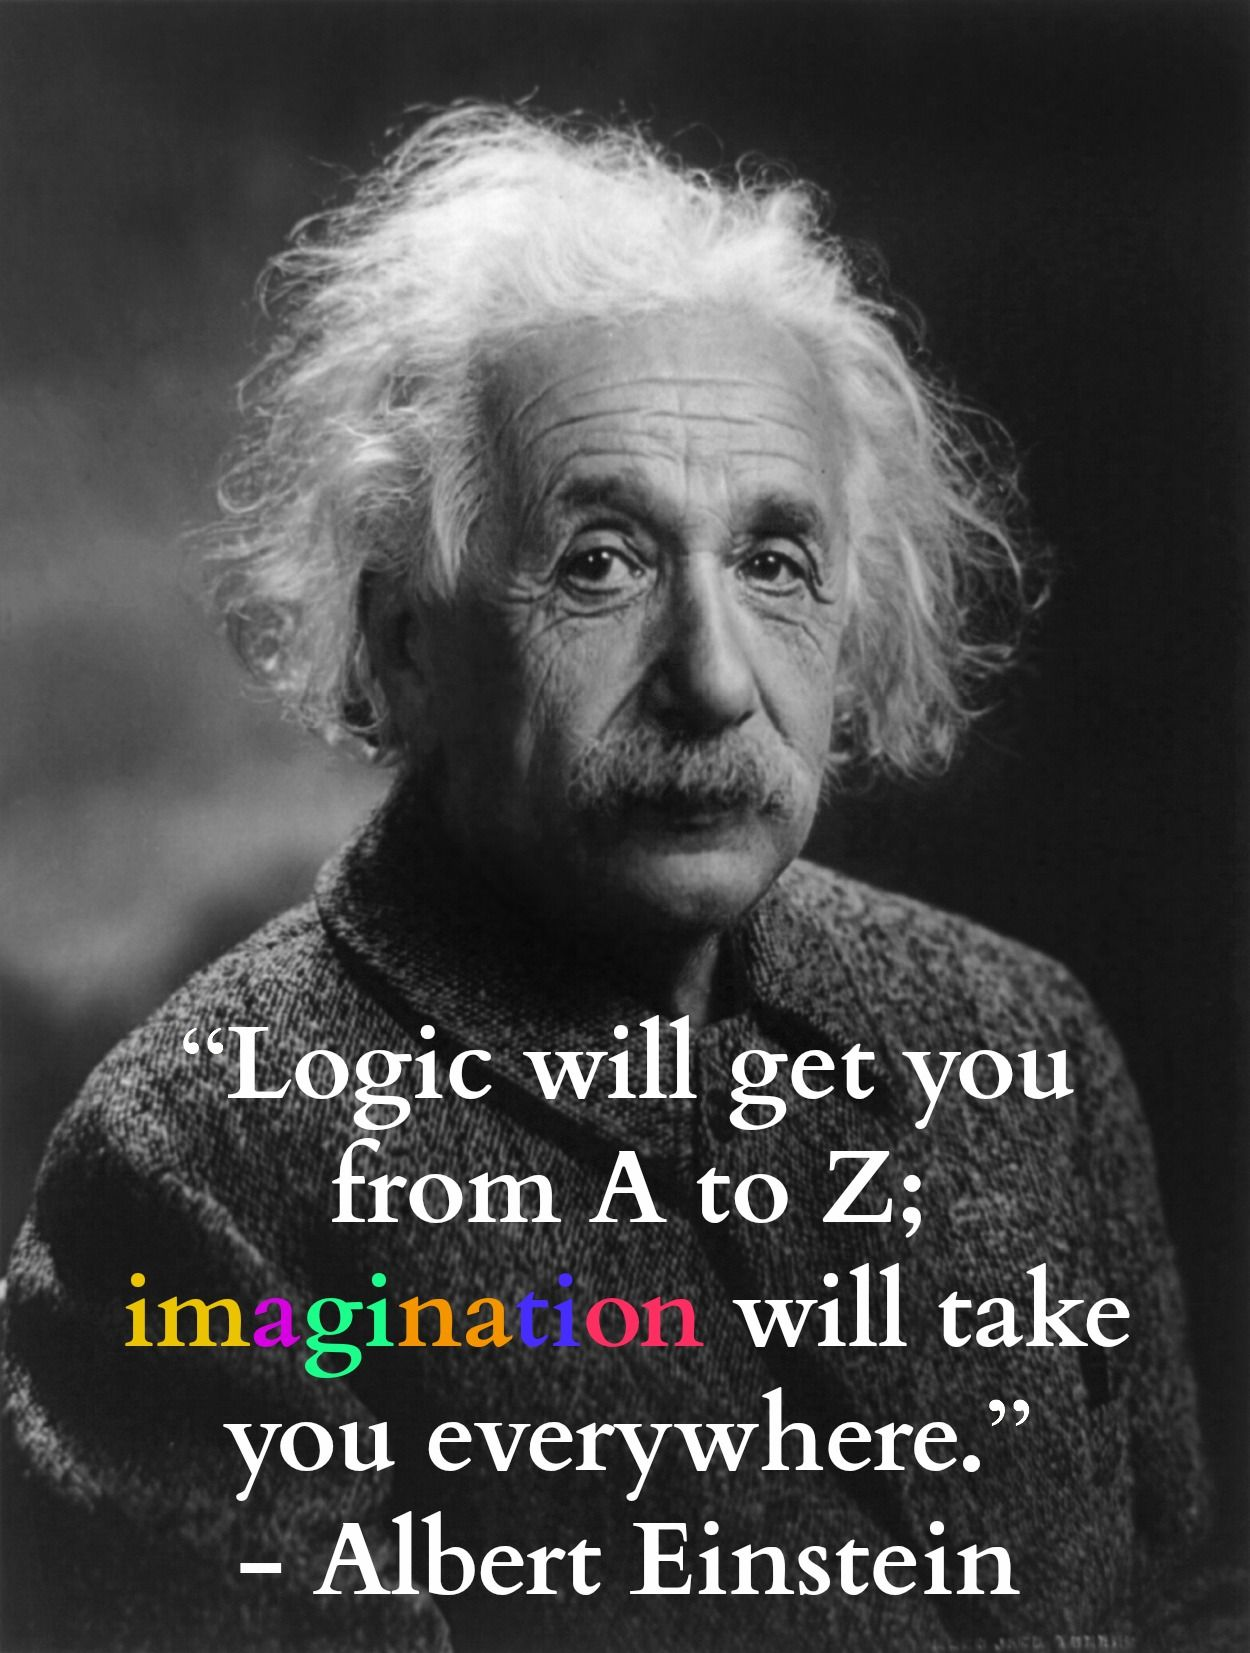 Famous Quotes Albert Einstein Famous Quotes With Images | Just Saying | Einstein  Famous Quotes